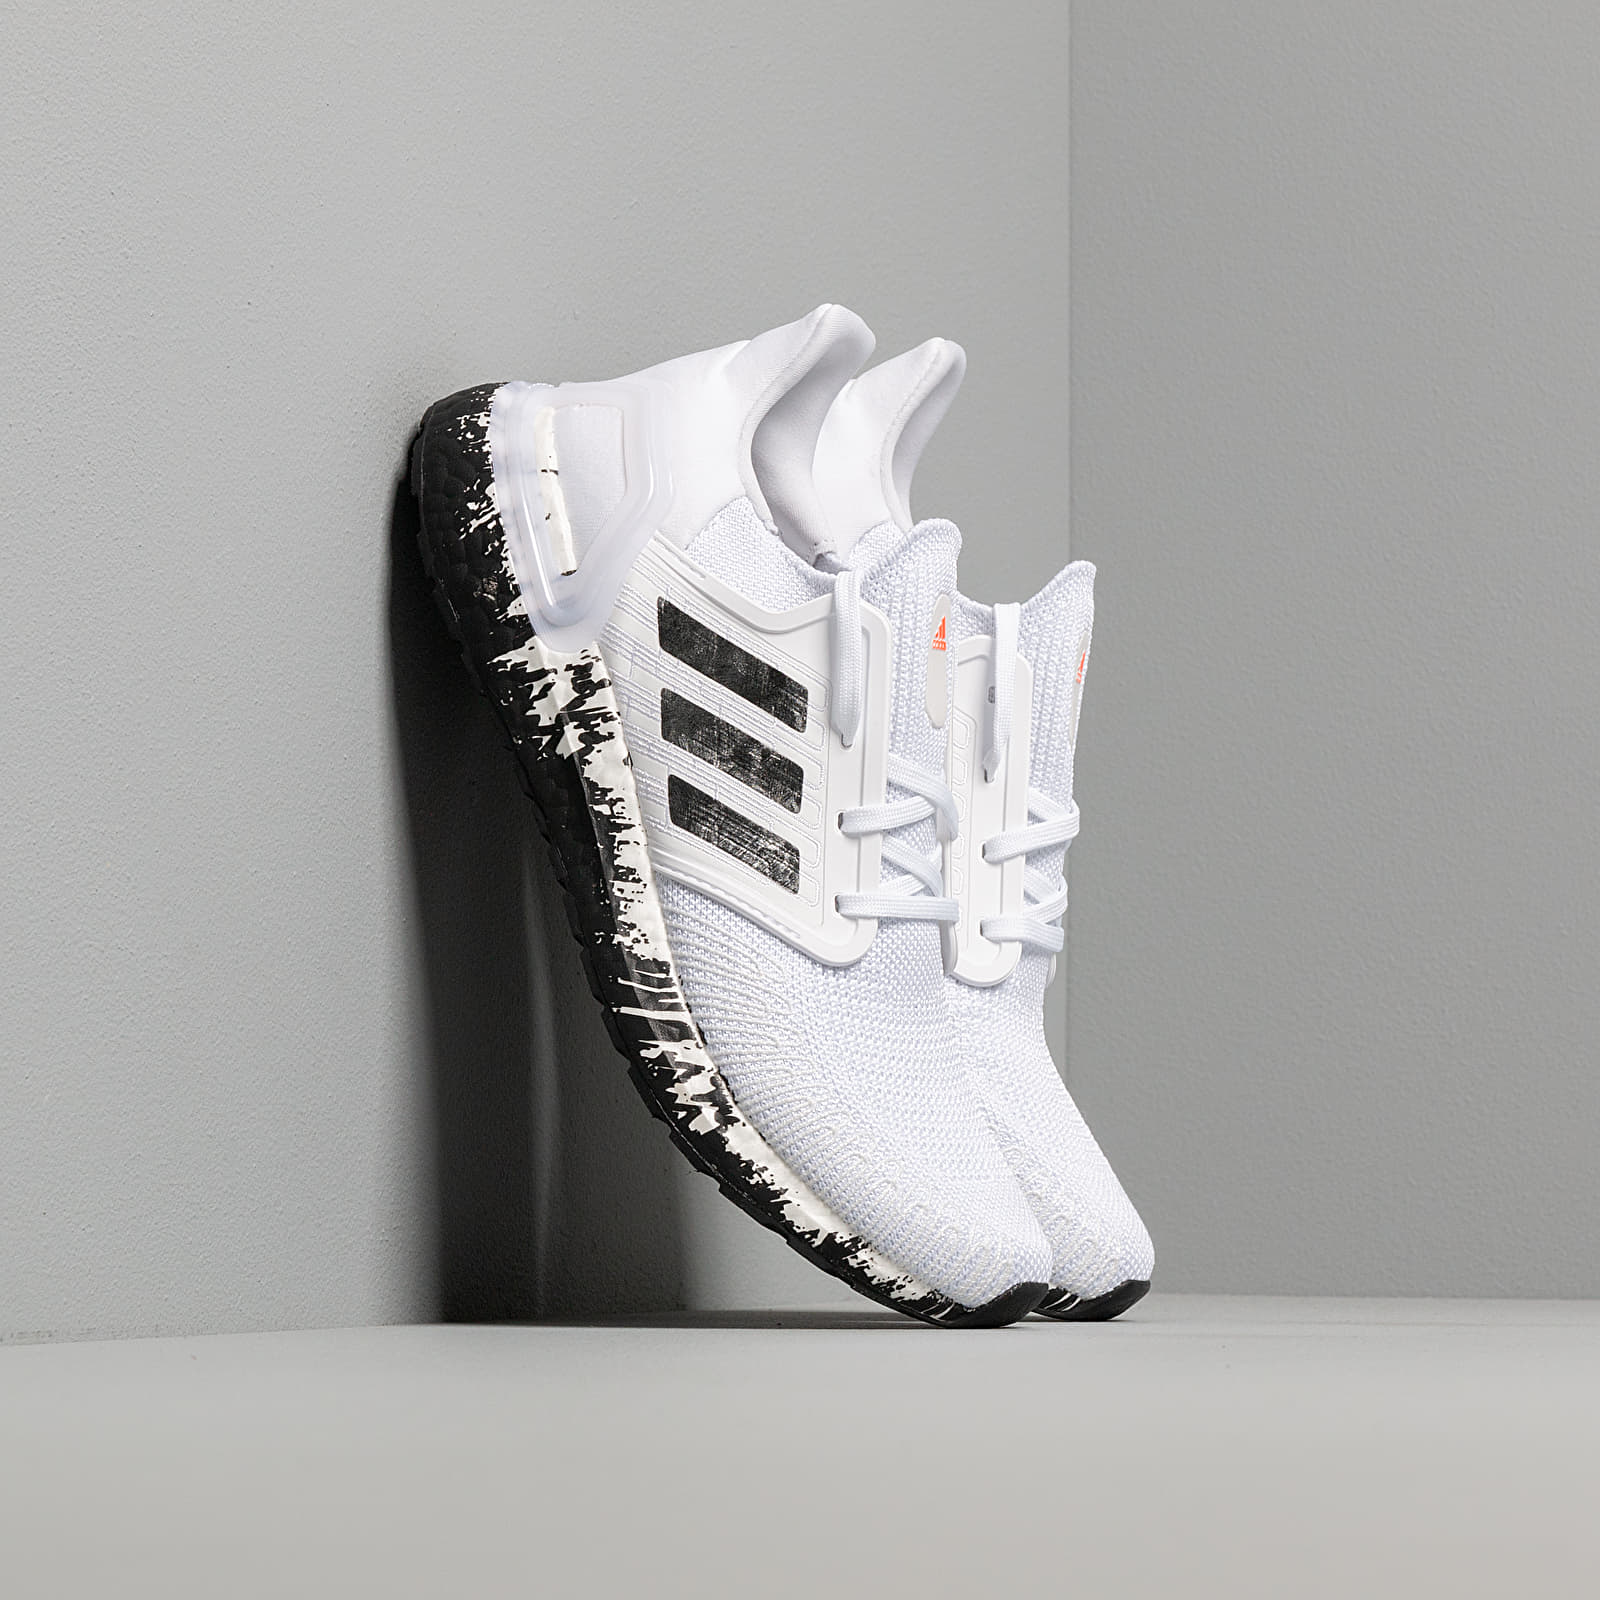 Chaussures et baskets femme adidas UltraBOOST 20 W Ftw White/ Core Black/ Signature Coral